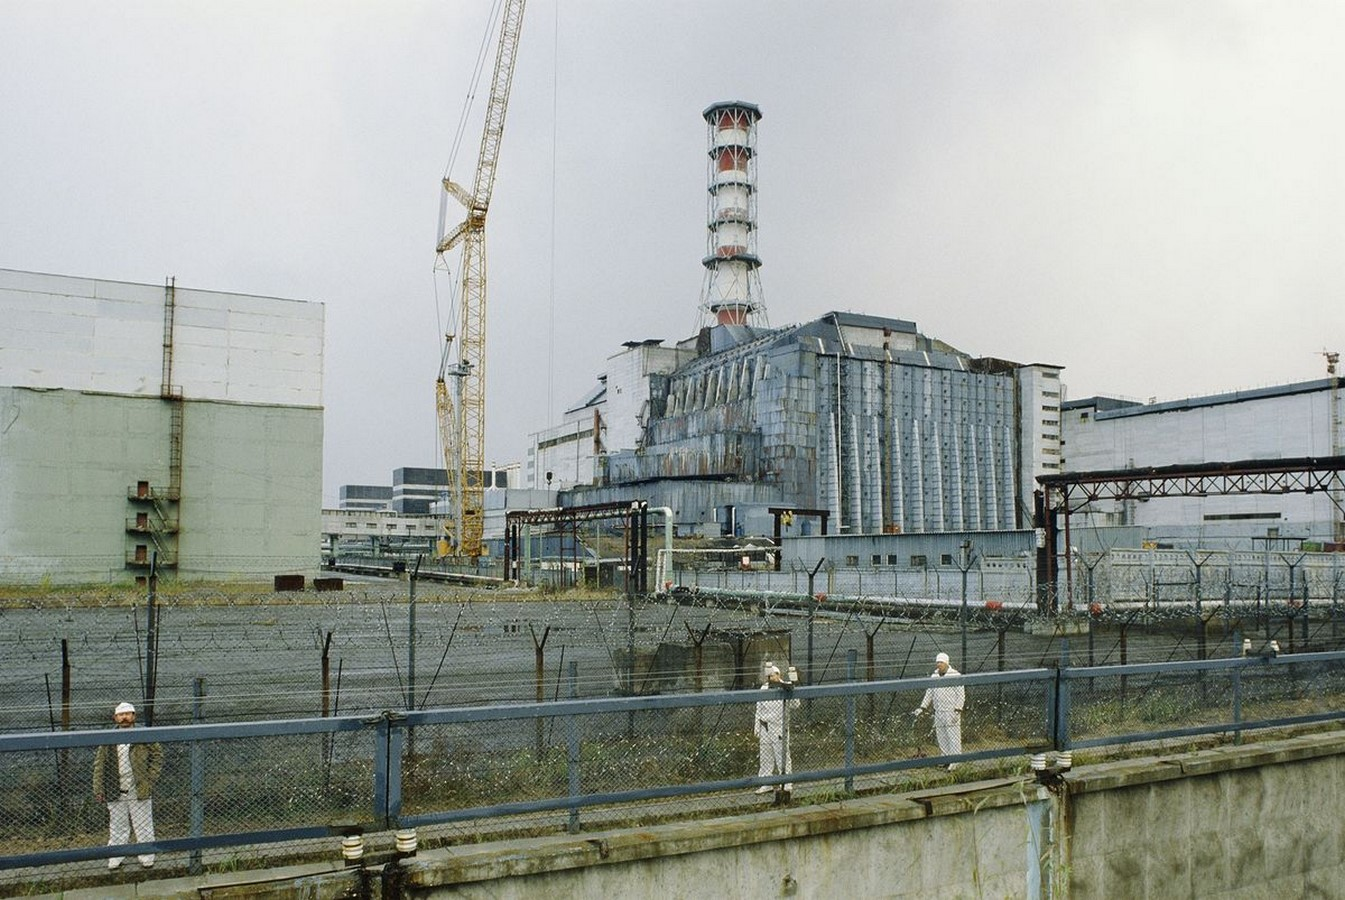 Chernobyl: What remains of the place? - Sheet2